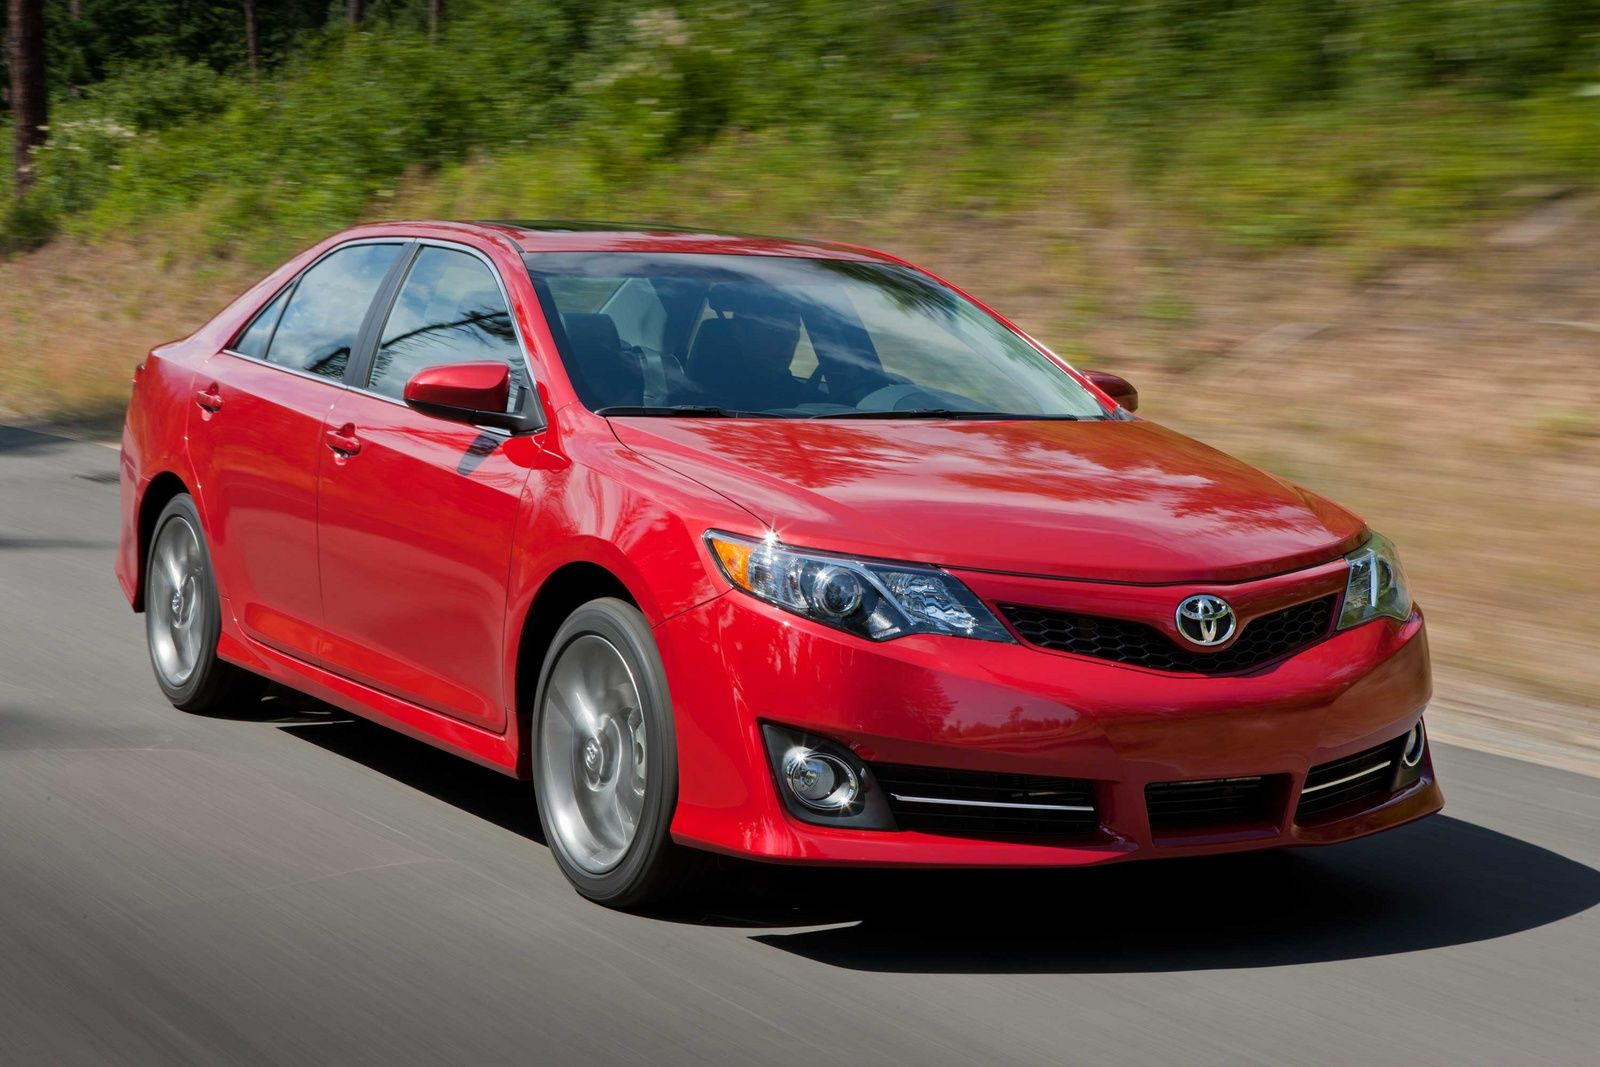 2013 toyota camry red wallpaper toyota 2013 camry red